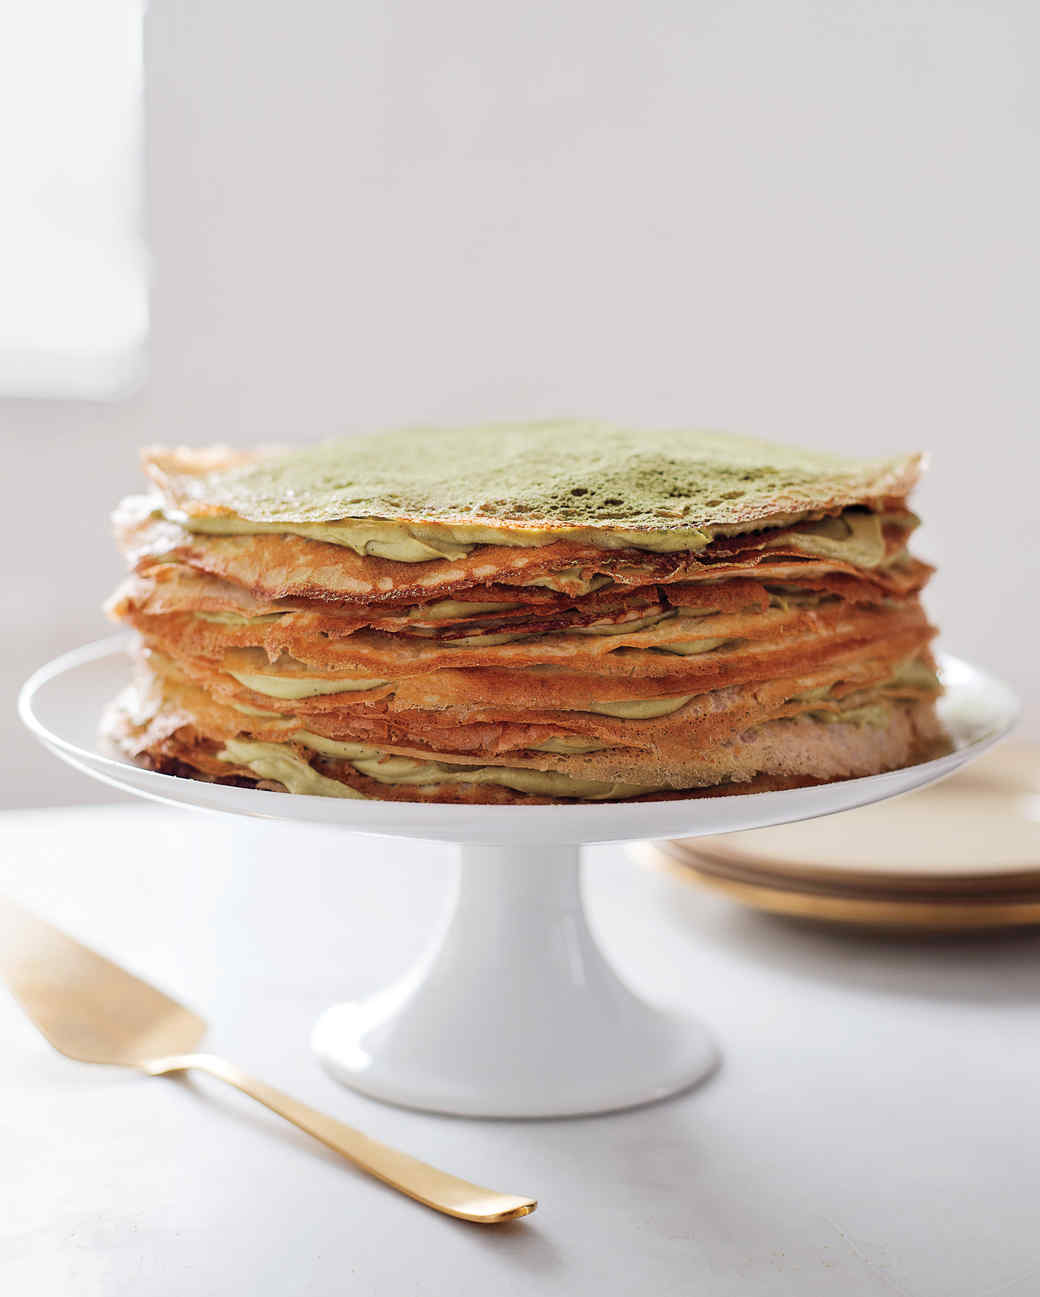 Martha Stewart Chocolate Crepe Cake